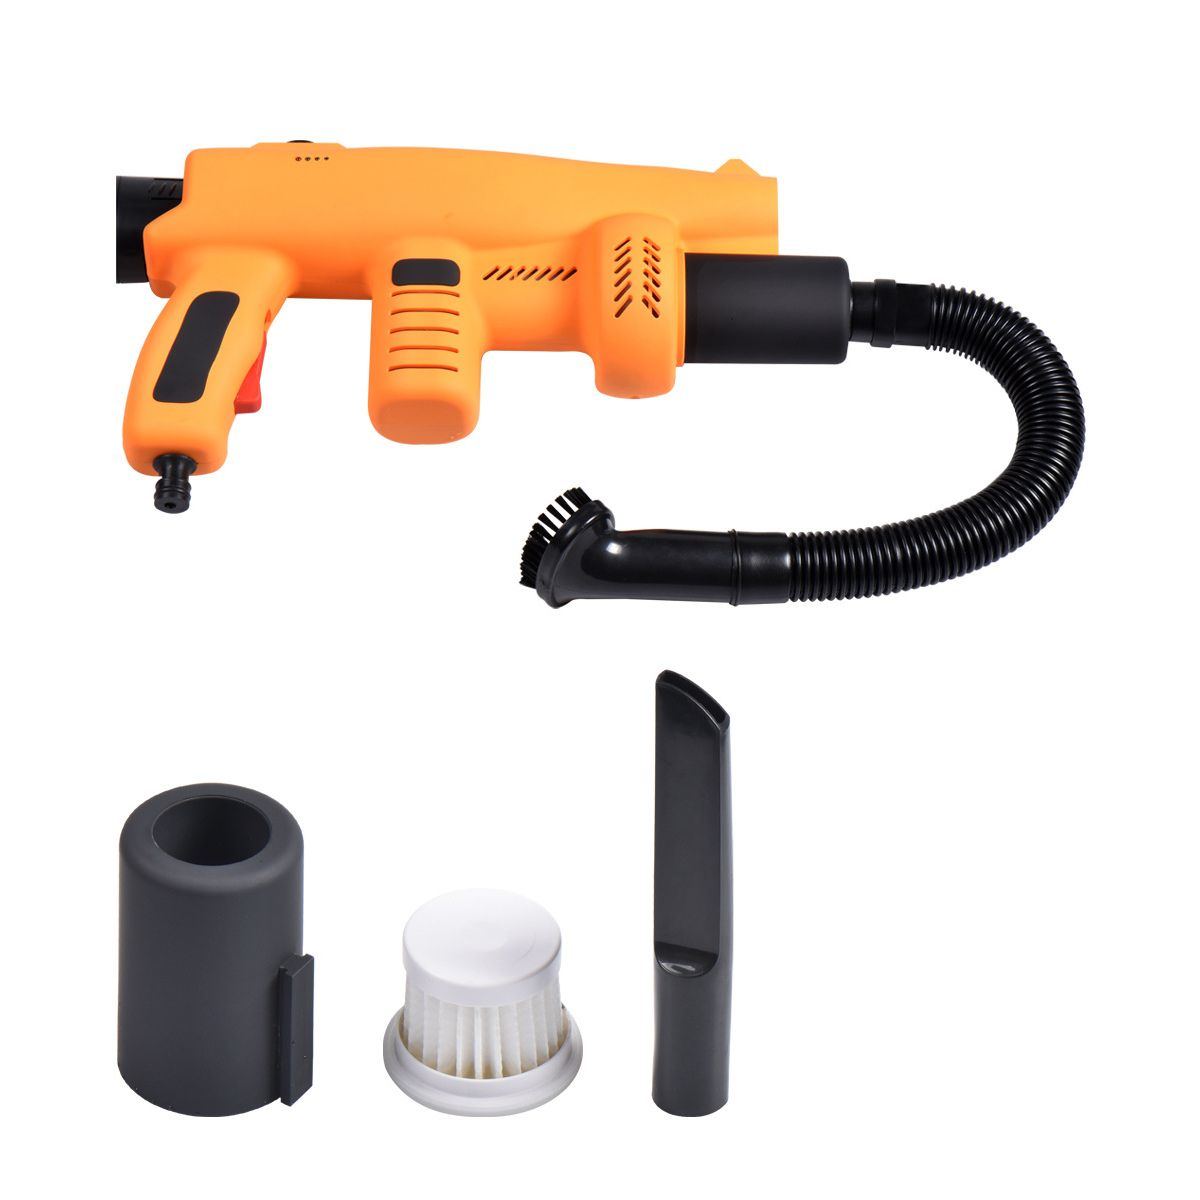 12V High Pressure Car Wash Car Washer Pump Cleaner Car Care Portable Electric Washing Machine with Vacuum cleaner brush